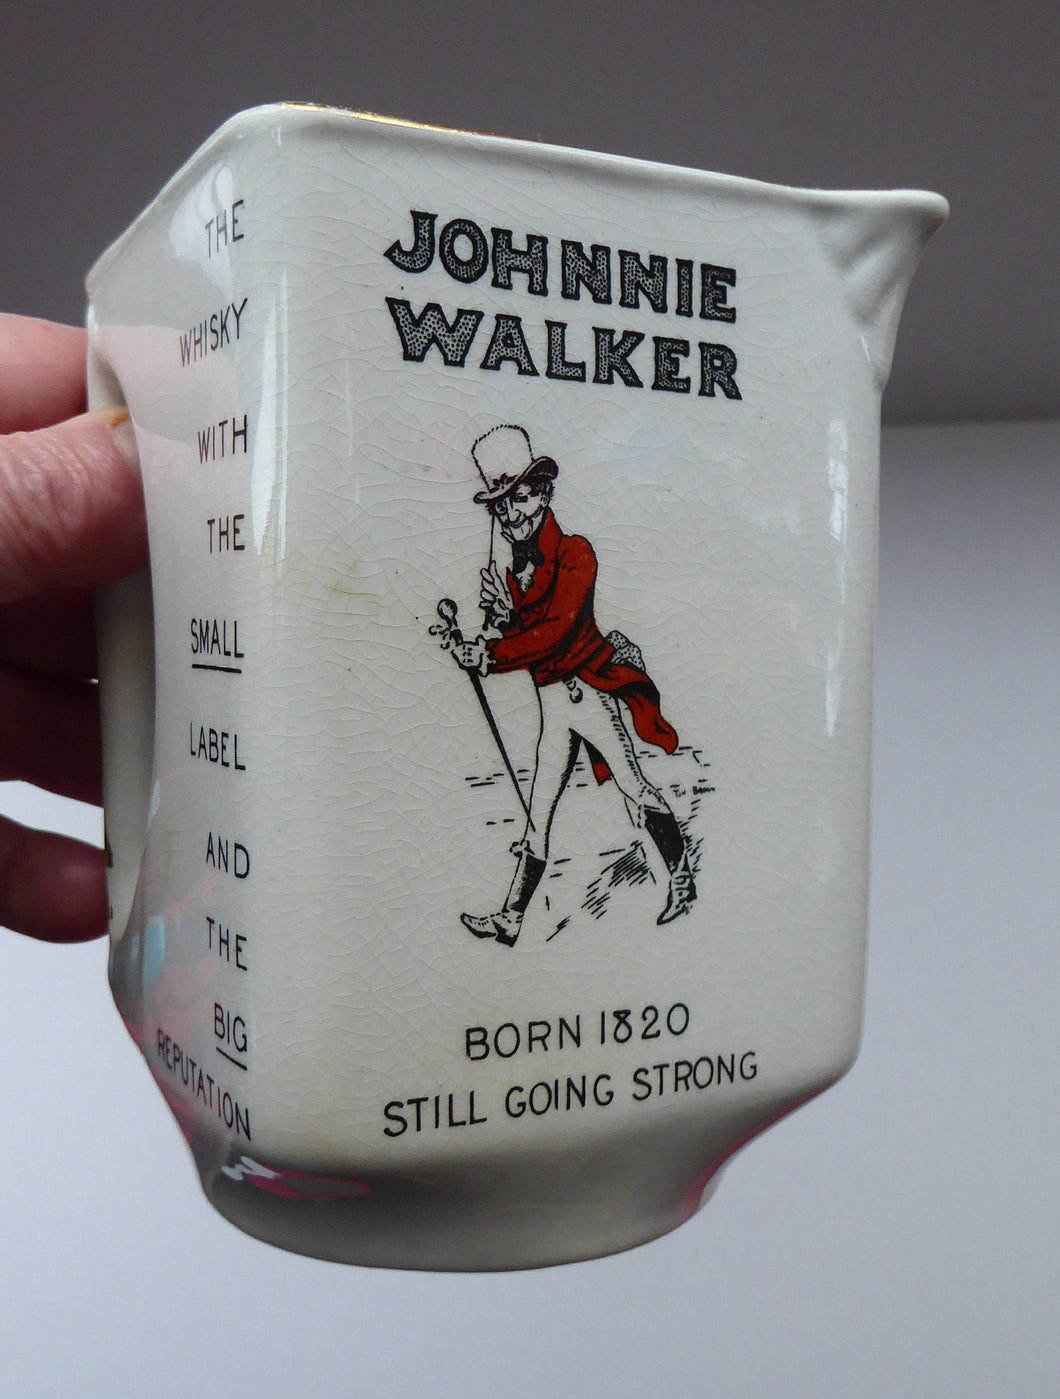 1930s JOHNNIE WALKER Whisky Advertising Jug. Geometric Shape with Handle Built into the Main Body Section